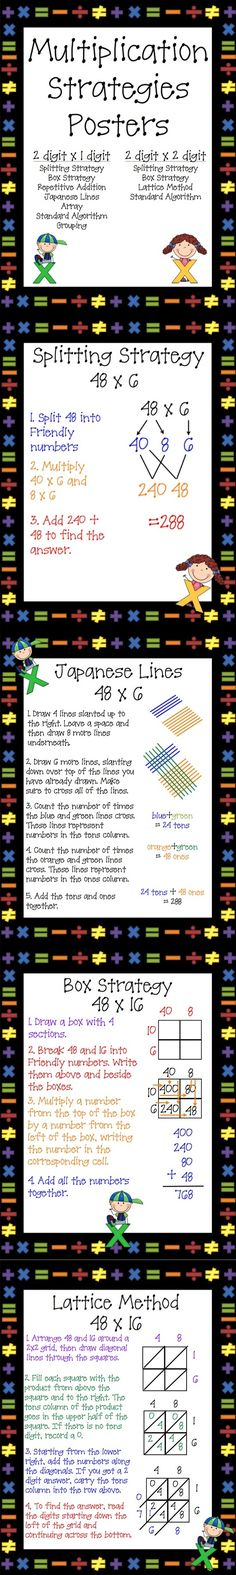 Use these 11 Multiplication Strategies Posters as anchor charts or mini notes for your students. Included in this set are 7 two-digit by one-digit strategies and 4 two-digit by two-digit strategies. Two-Digit by One-Digit Strategies: Splitting, Box, Repetetive Addition, Japanese Lines, Array, Grouping and Standard Algorithm Two-Digit by Two-Digit Strategies: Splitting, Box, Lattice, Standard Algorithm